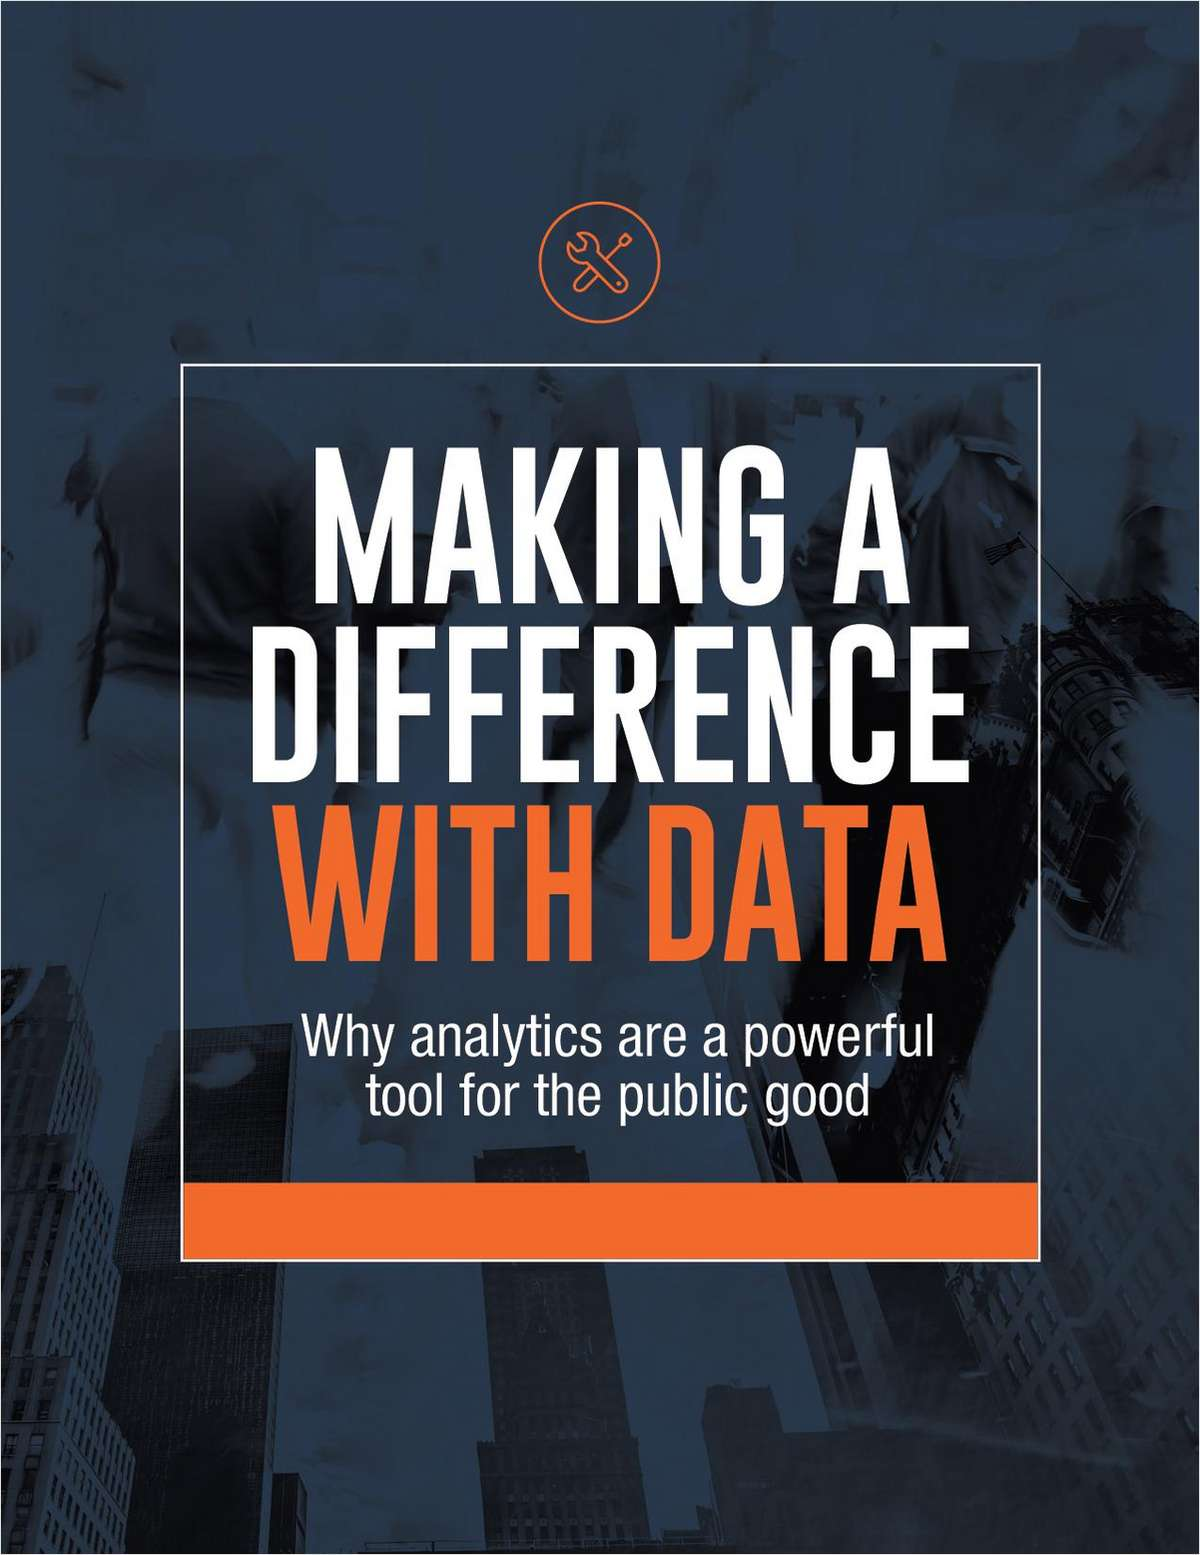 MAKING A DIFFERENCE WITH DATA